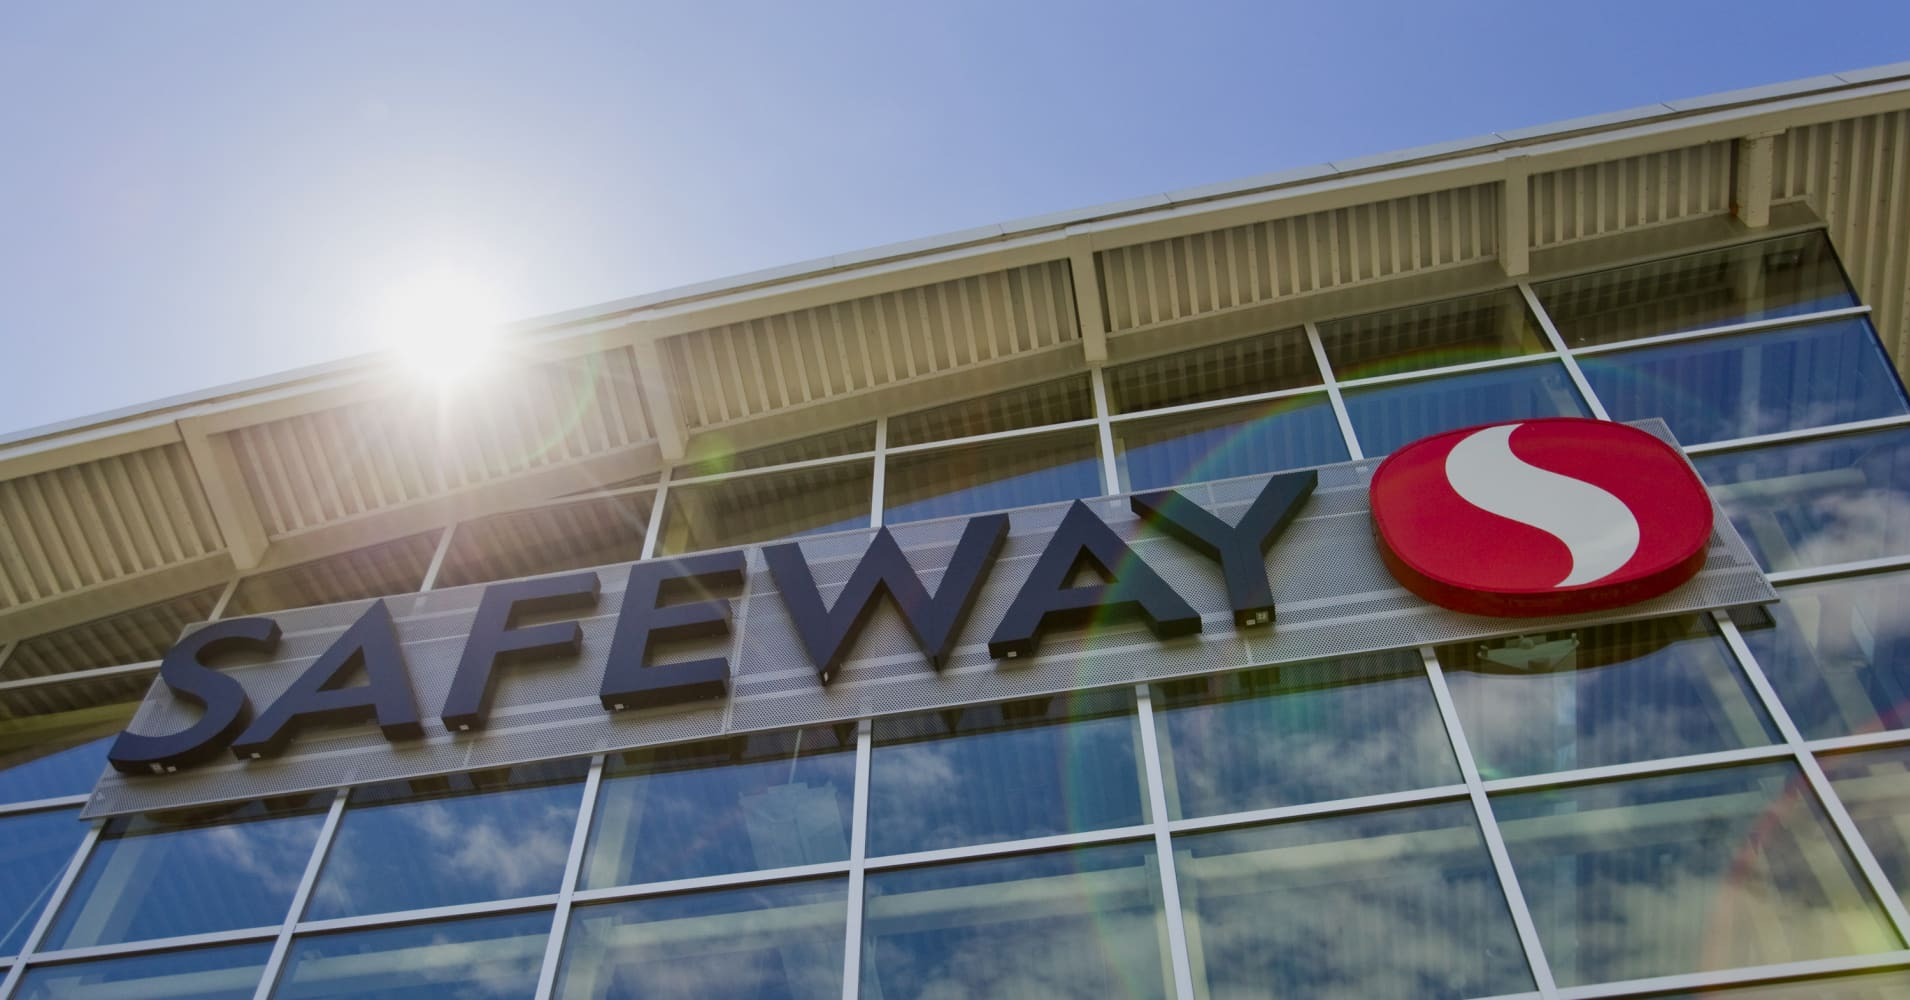 Safeway exploring sale of company buycottarizona